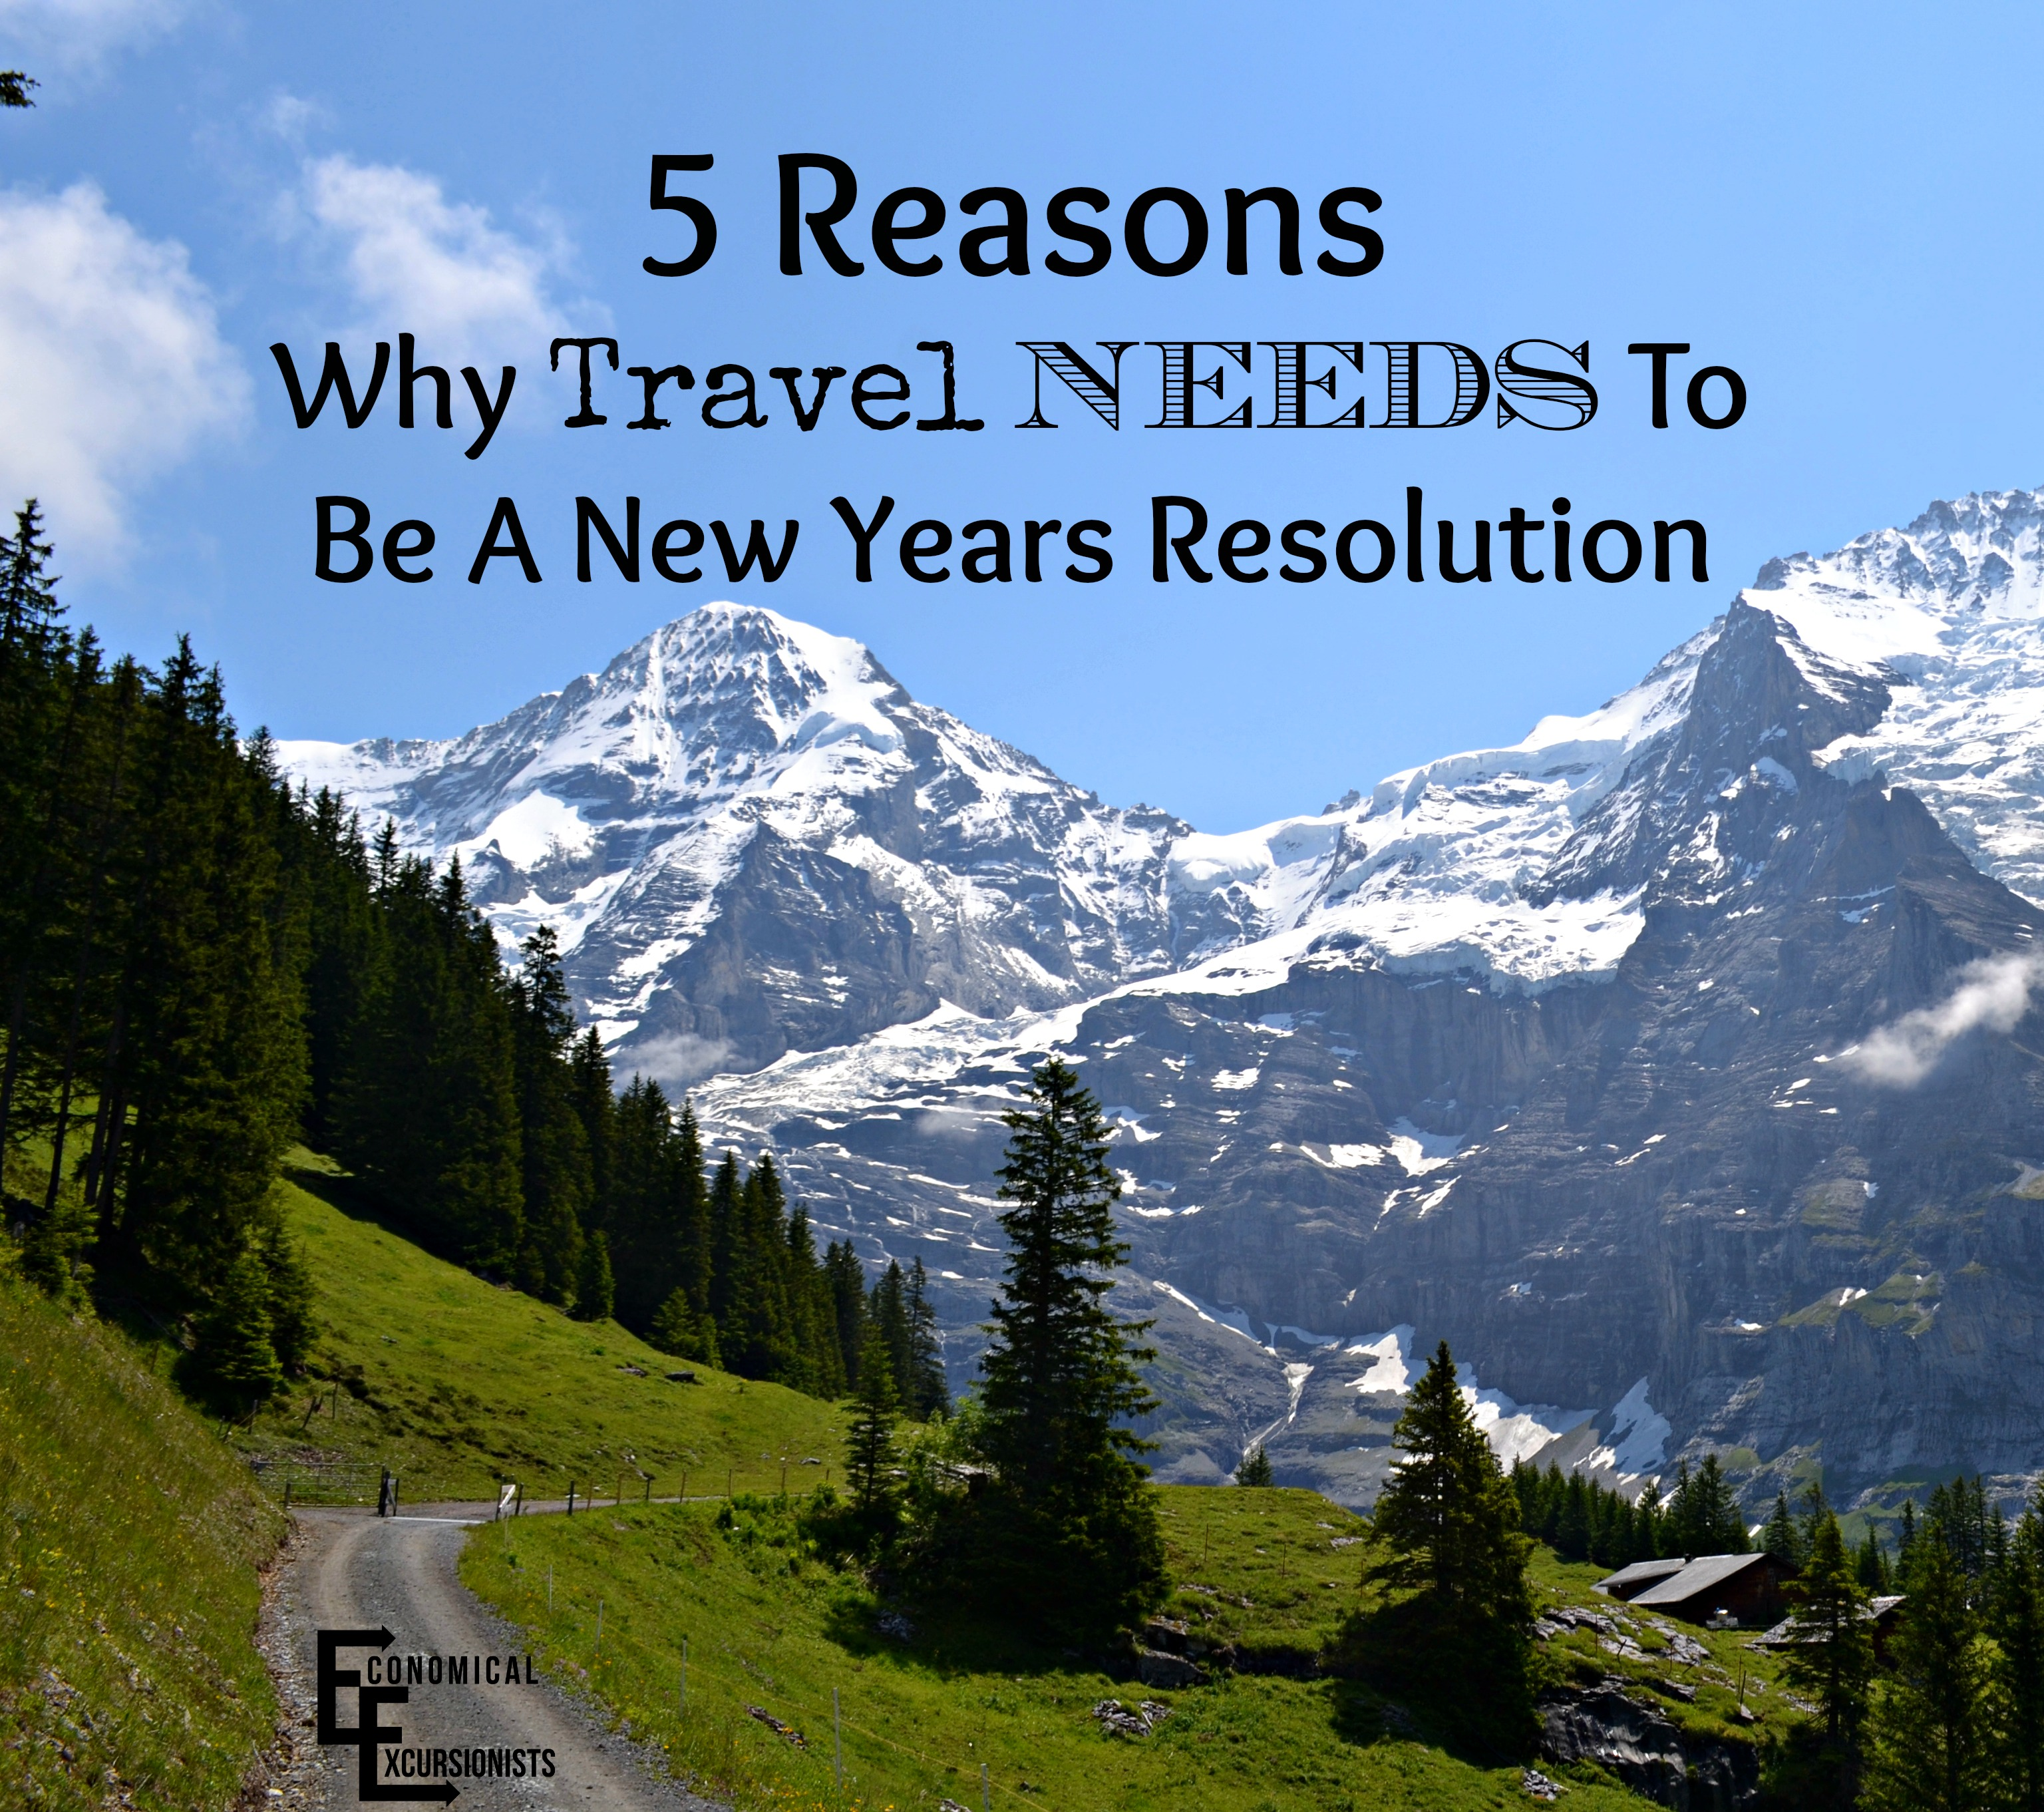 New Travel Trailers: The Best New Years Resolution You Can Make